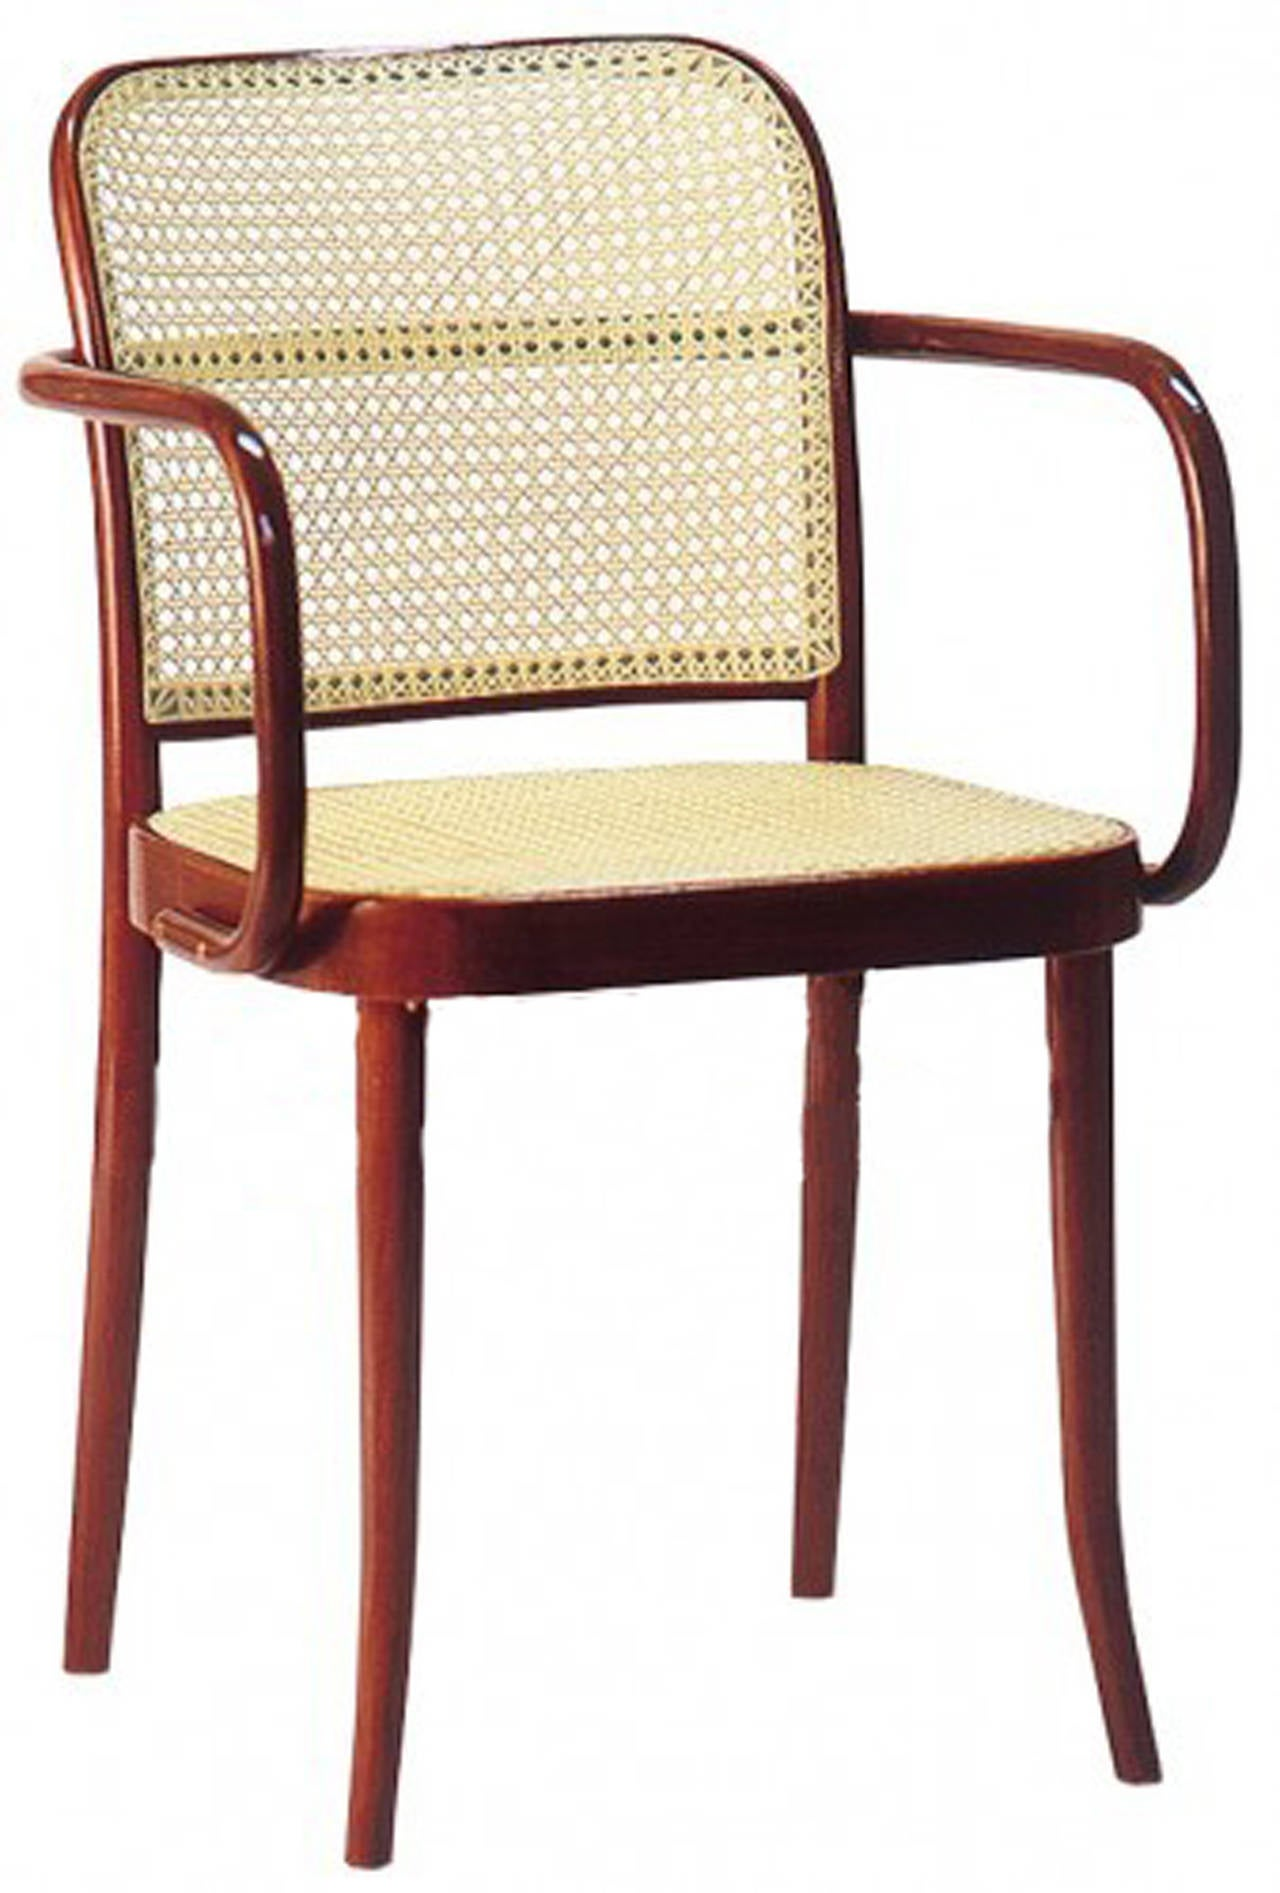 Thonet Bistrostuhl Thonet Great S N Chair All Seasons Thonet Mart Stam Outdoor